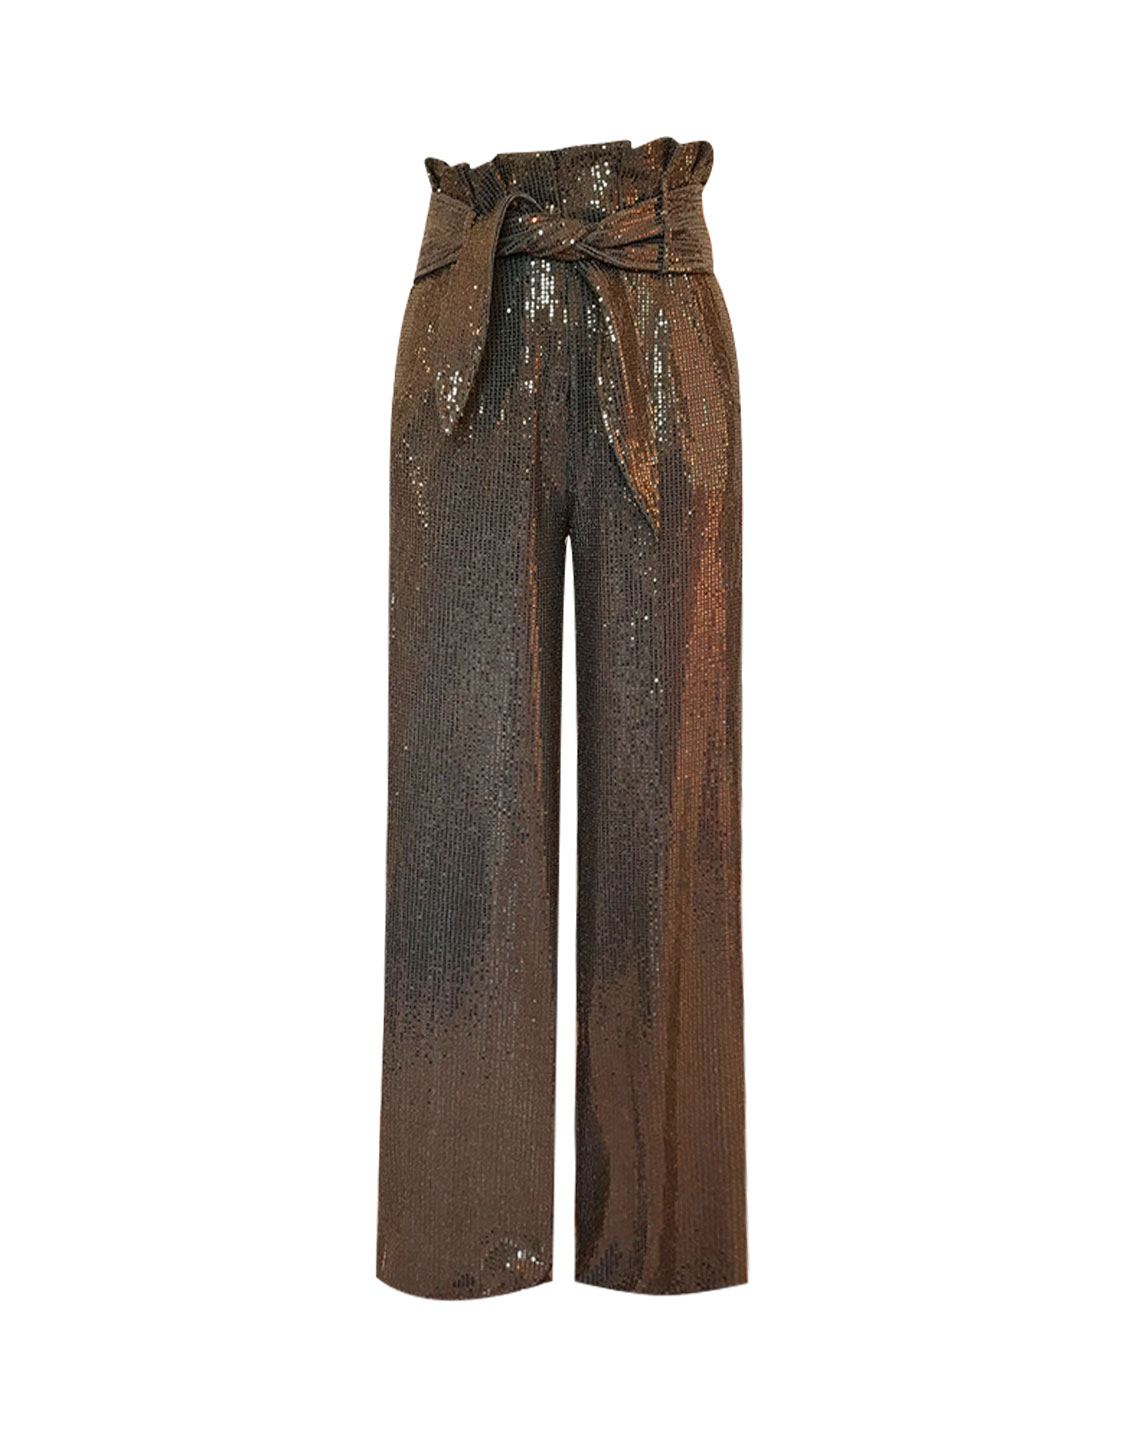 Iggy Pants - Metallic Brown by Jessica K on curated-crowd.com